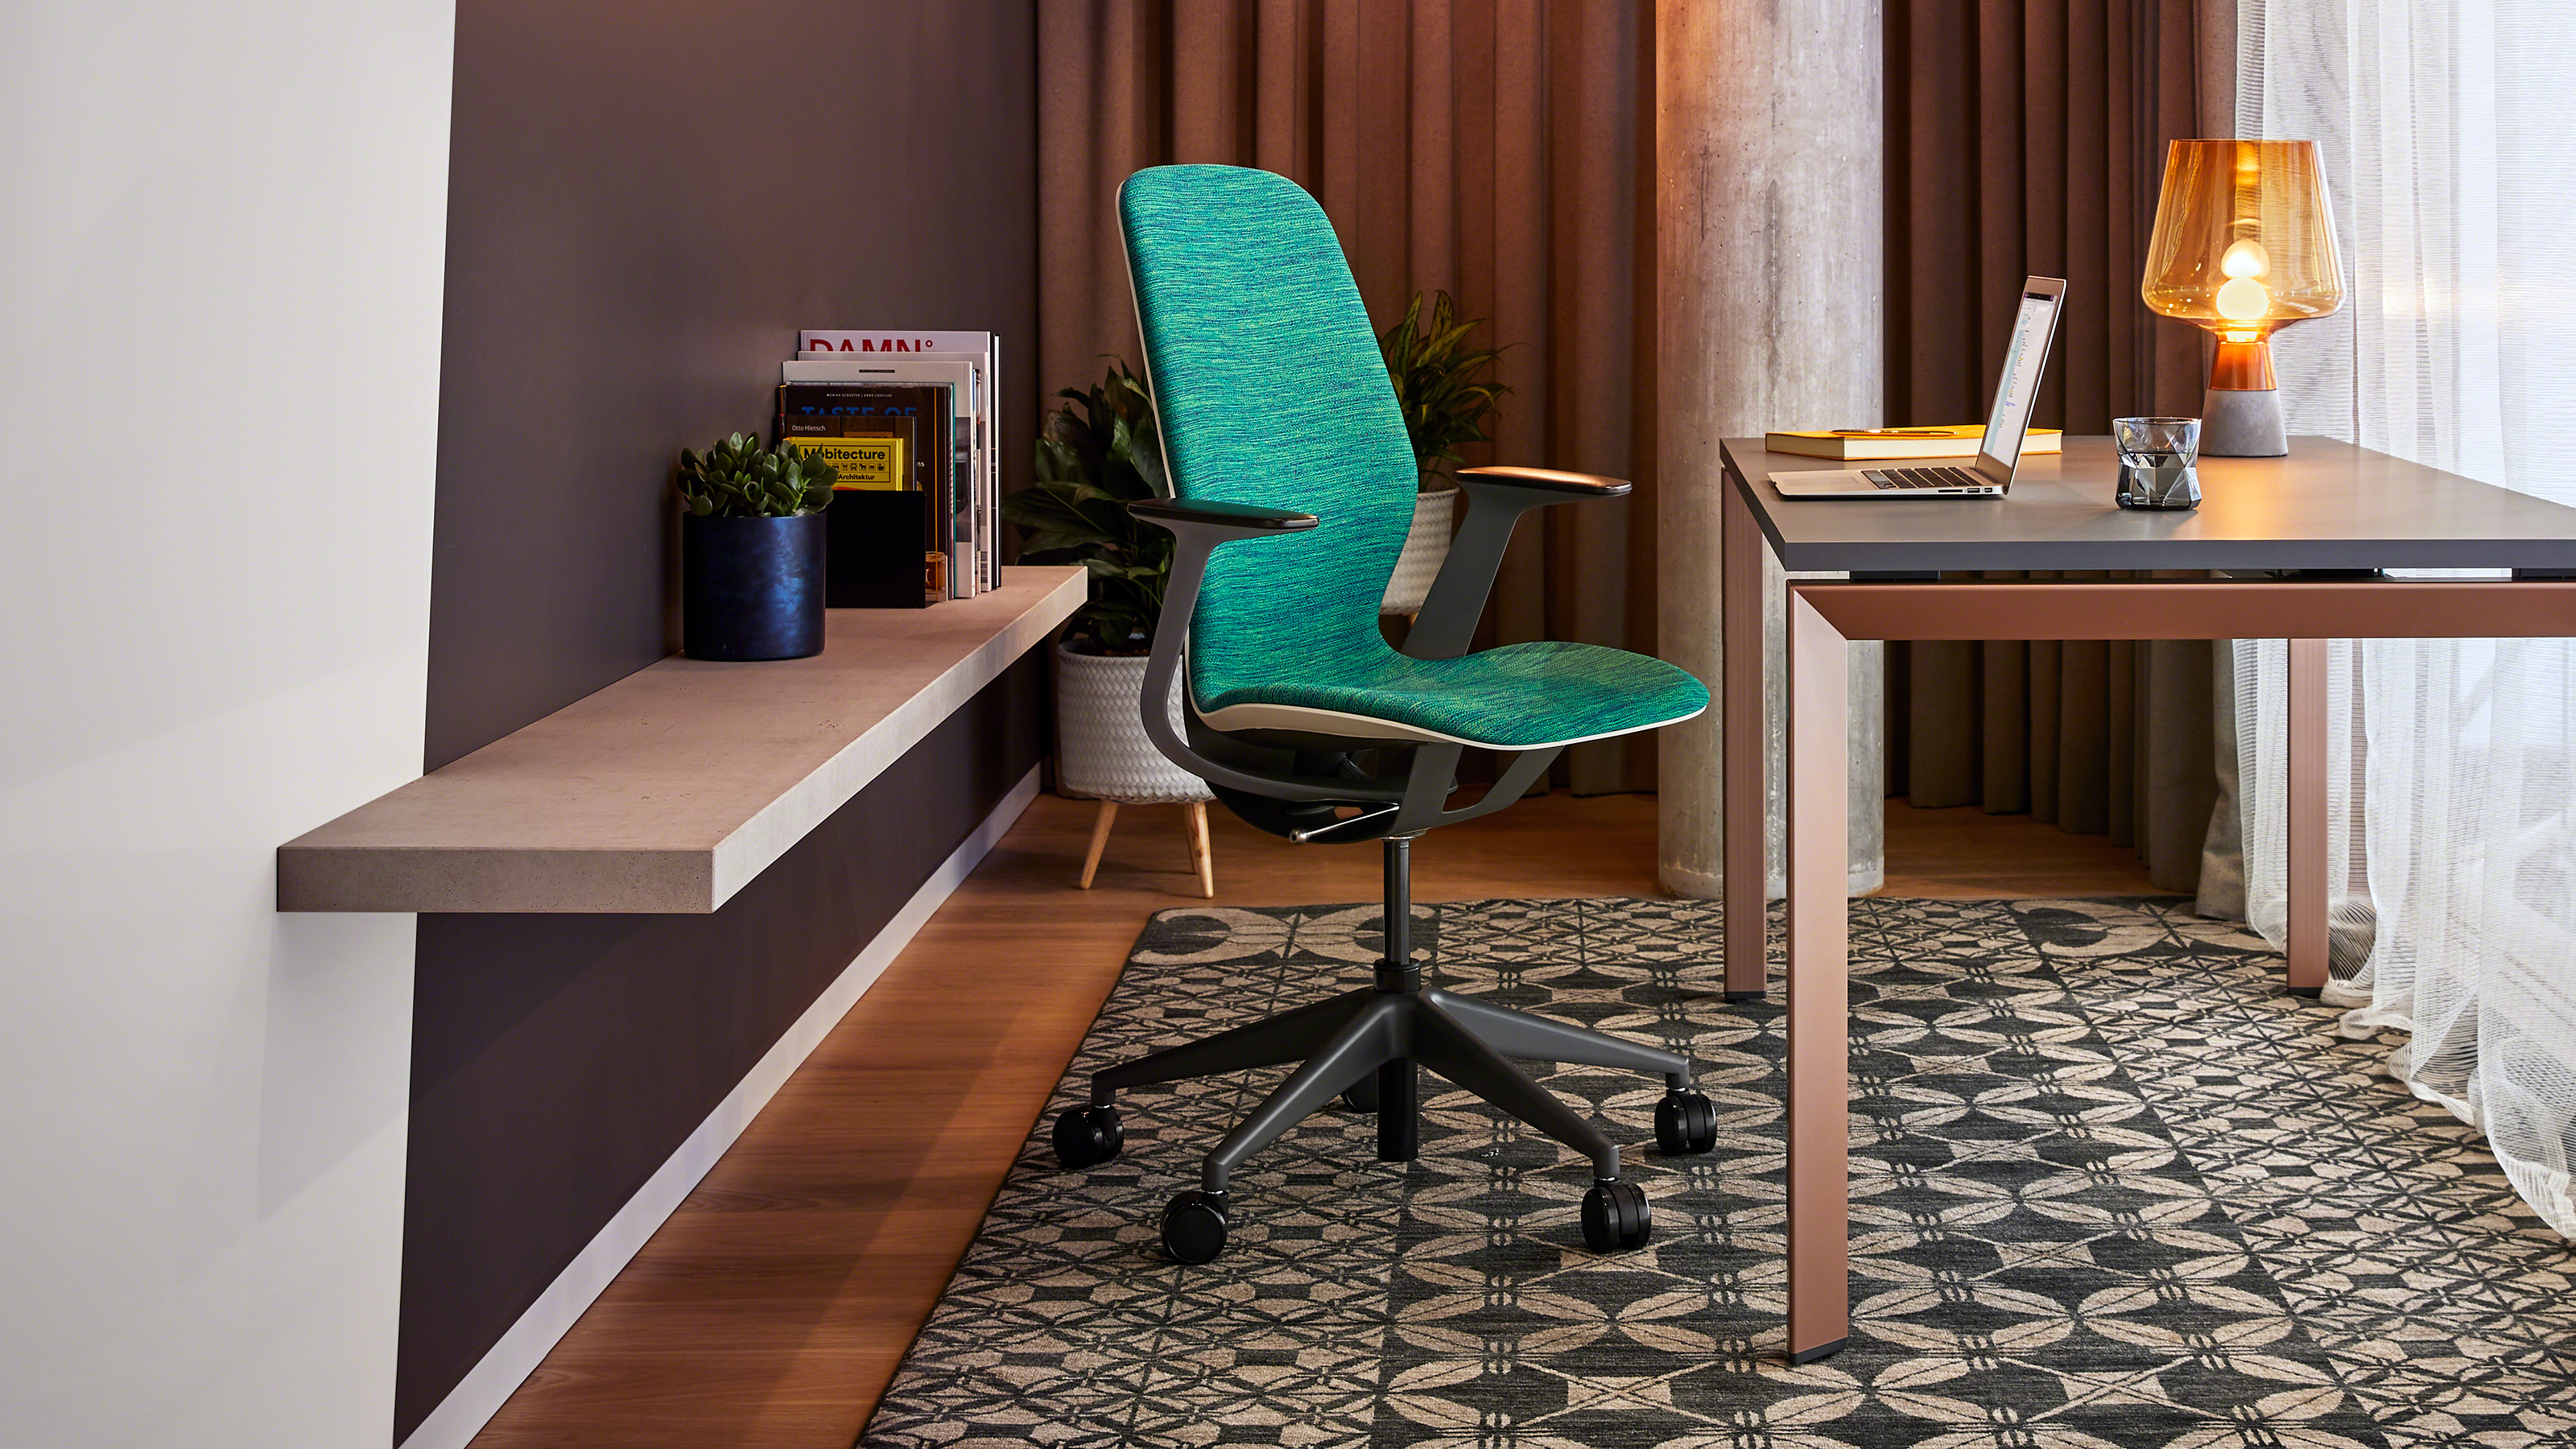 SILQ office chair by Steelcase is a breakthrough in seating design.